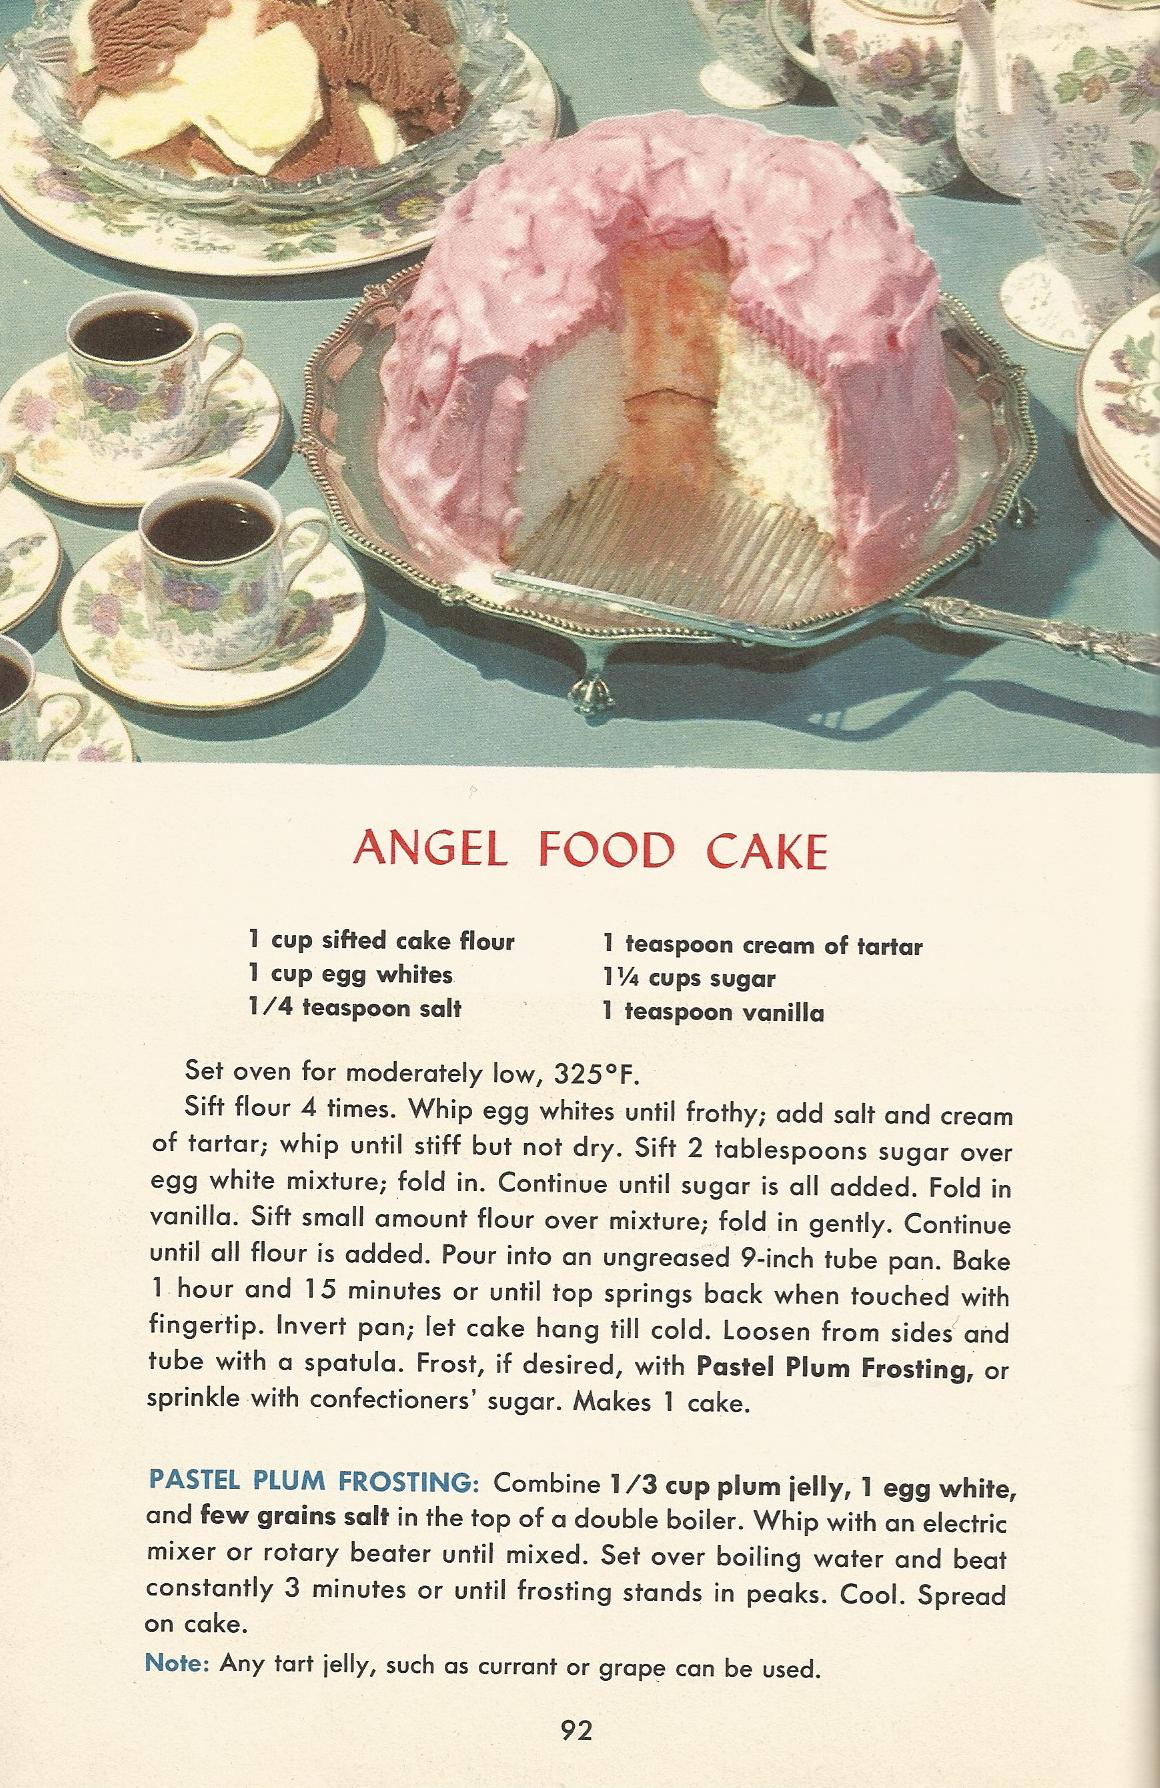 Vintage recipes 1950s cakes angel food cake antique alter ego vintage recipes 1950s cakes angel food cake forumfinder Image collections